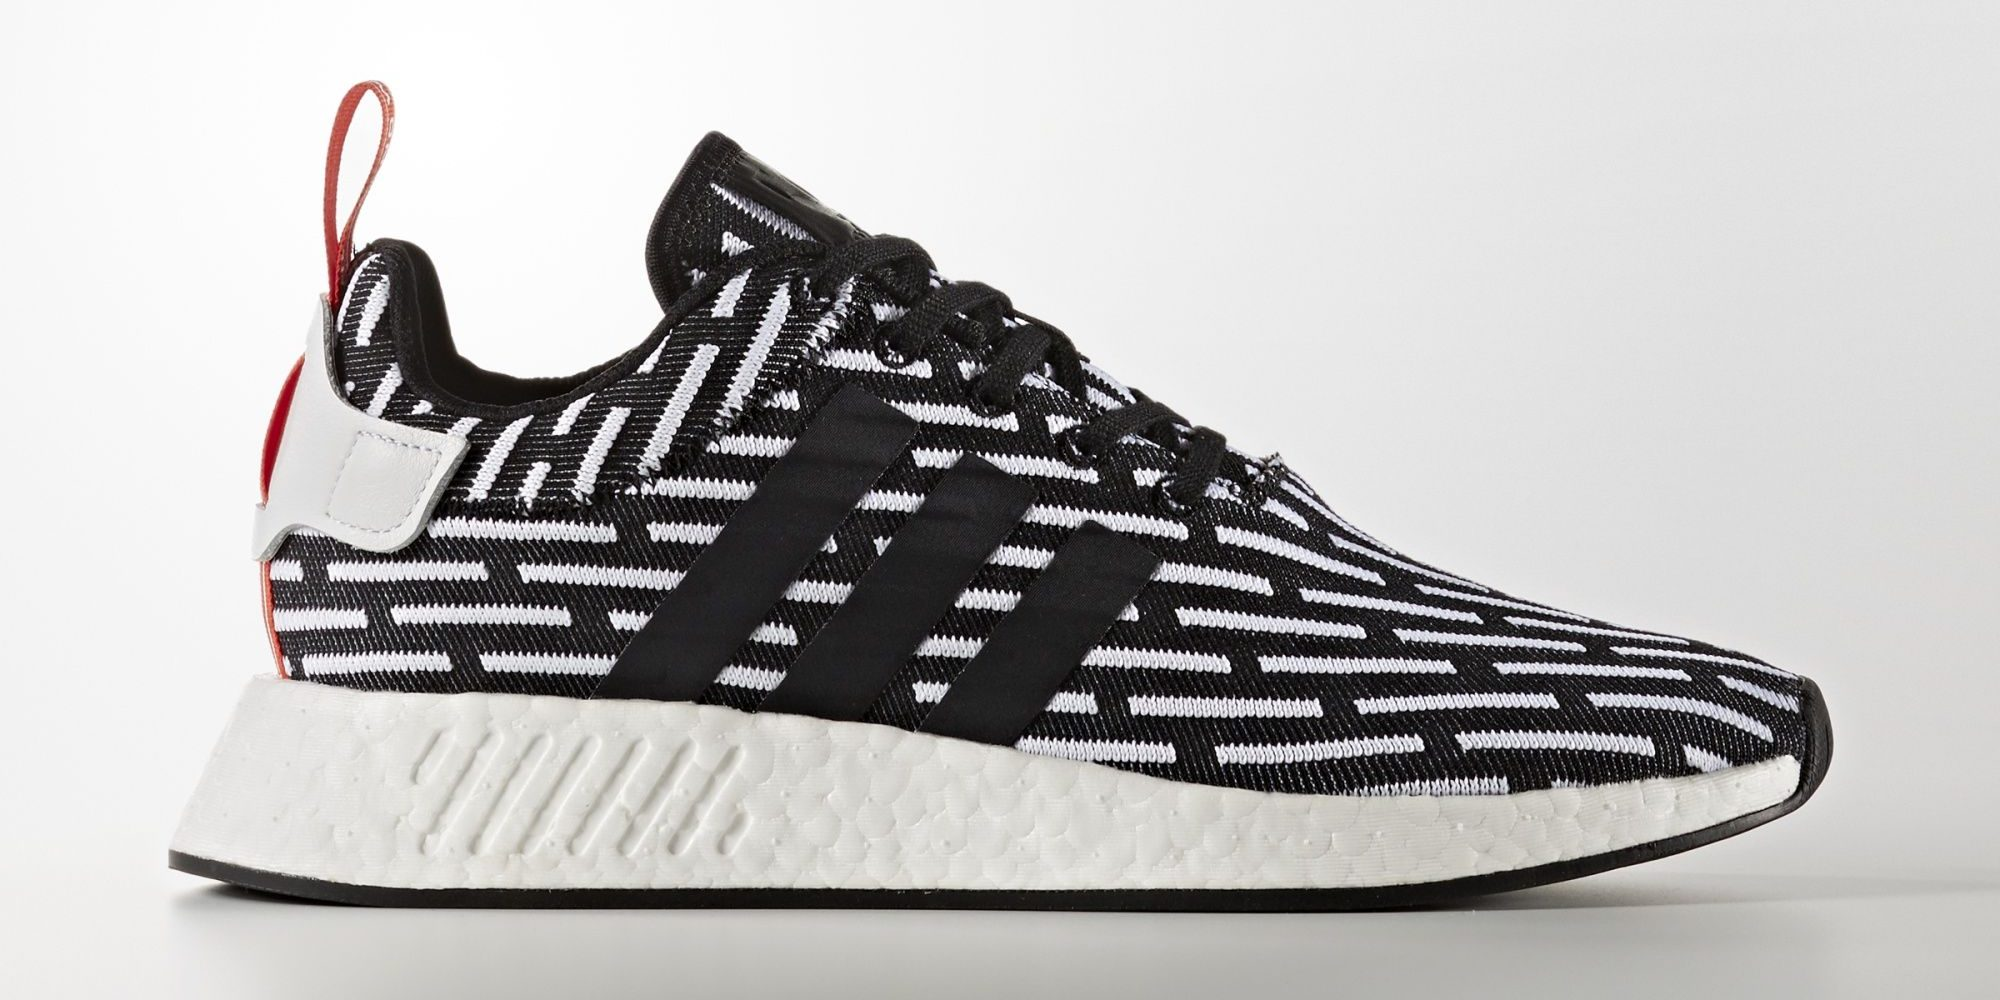 A Huge Batch of adidas NMD R2 Colorways Have Dropped - WearTesters